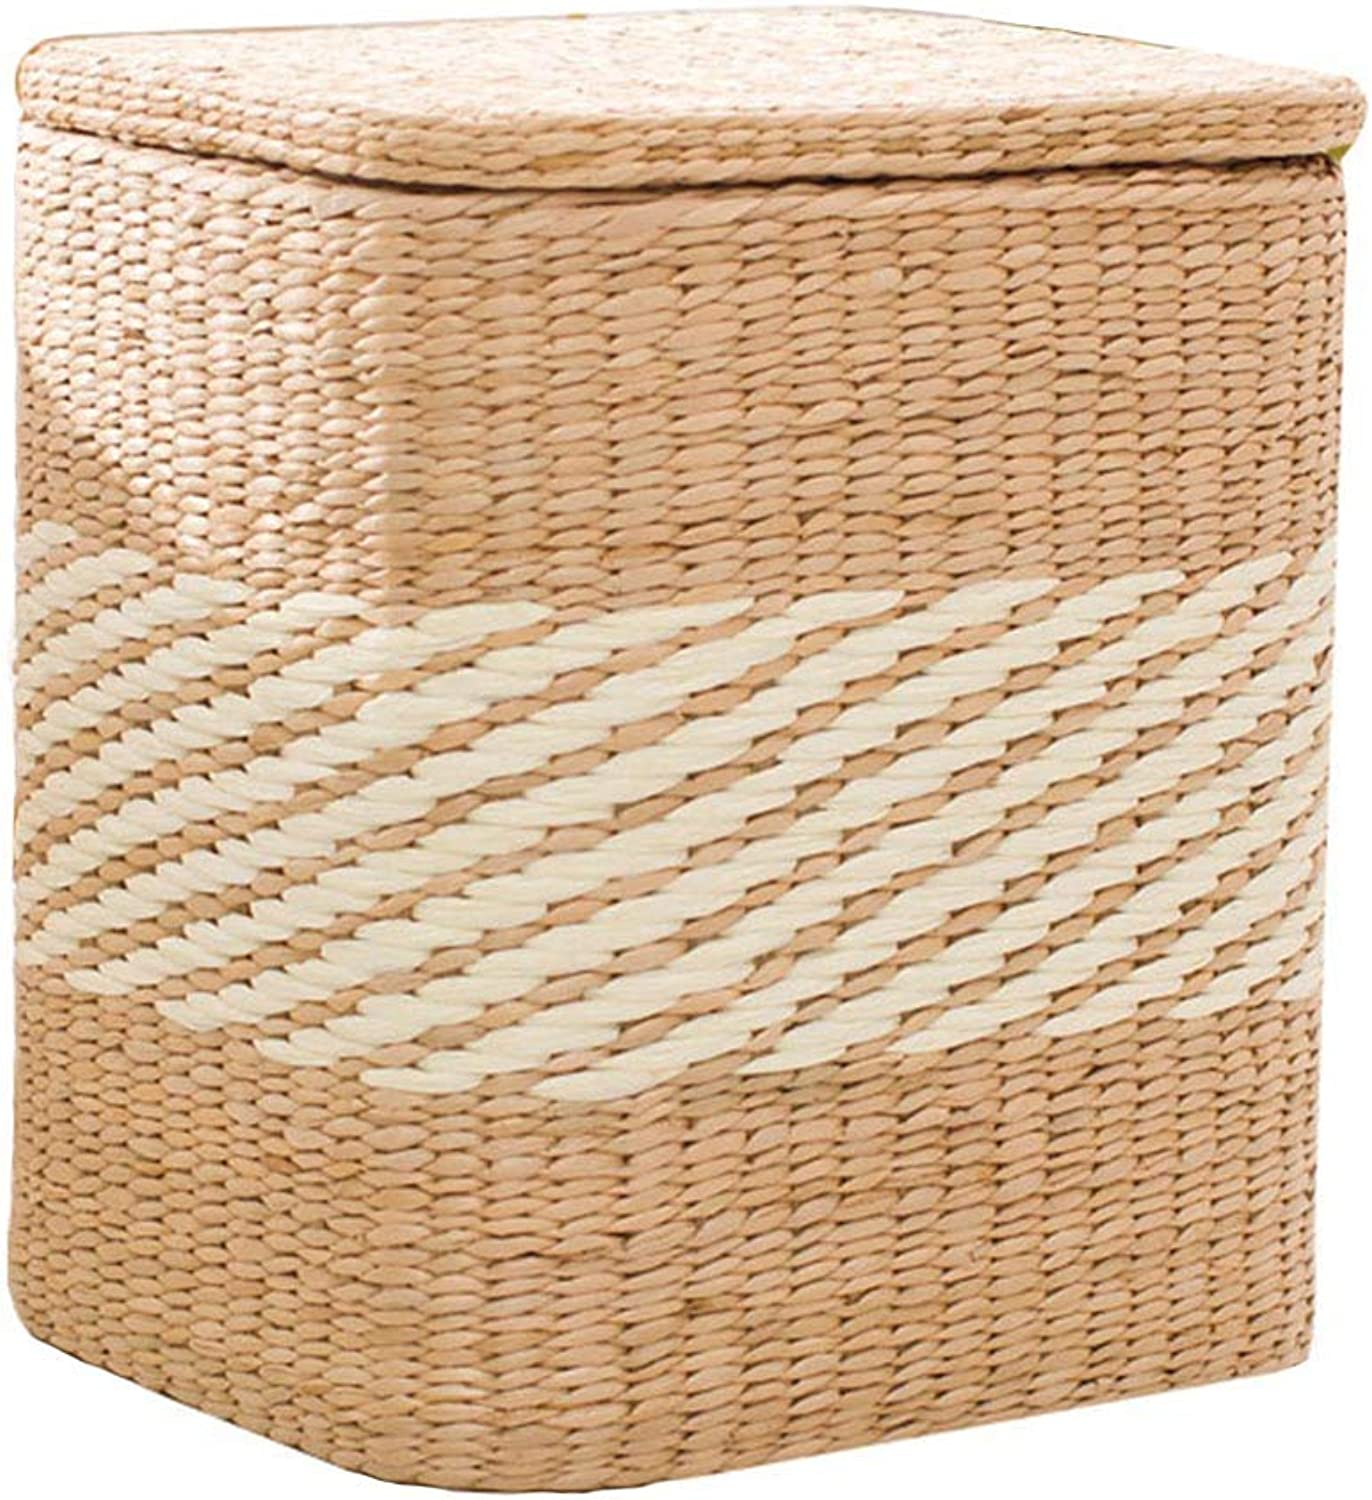 Home Footstool Rattan Storage Stool, Creative Home Square Solid Wood shoes Bench, Suitable for Living Room, Bedroom, Porch